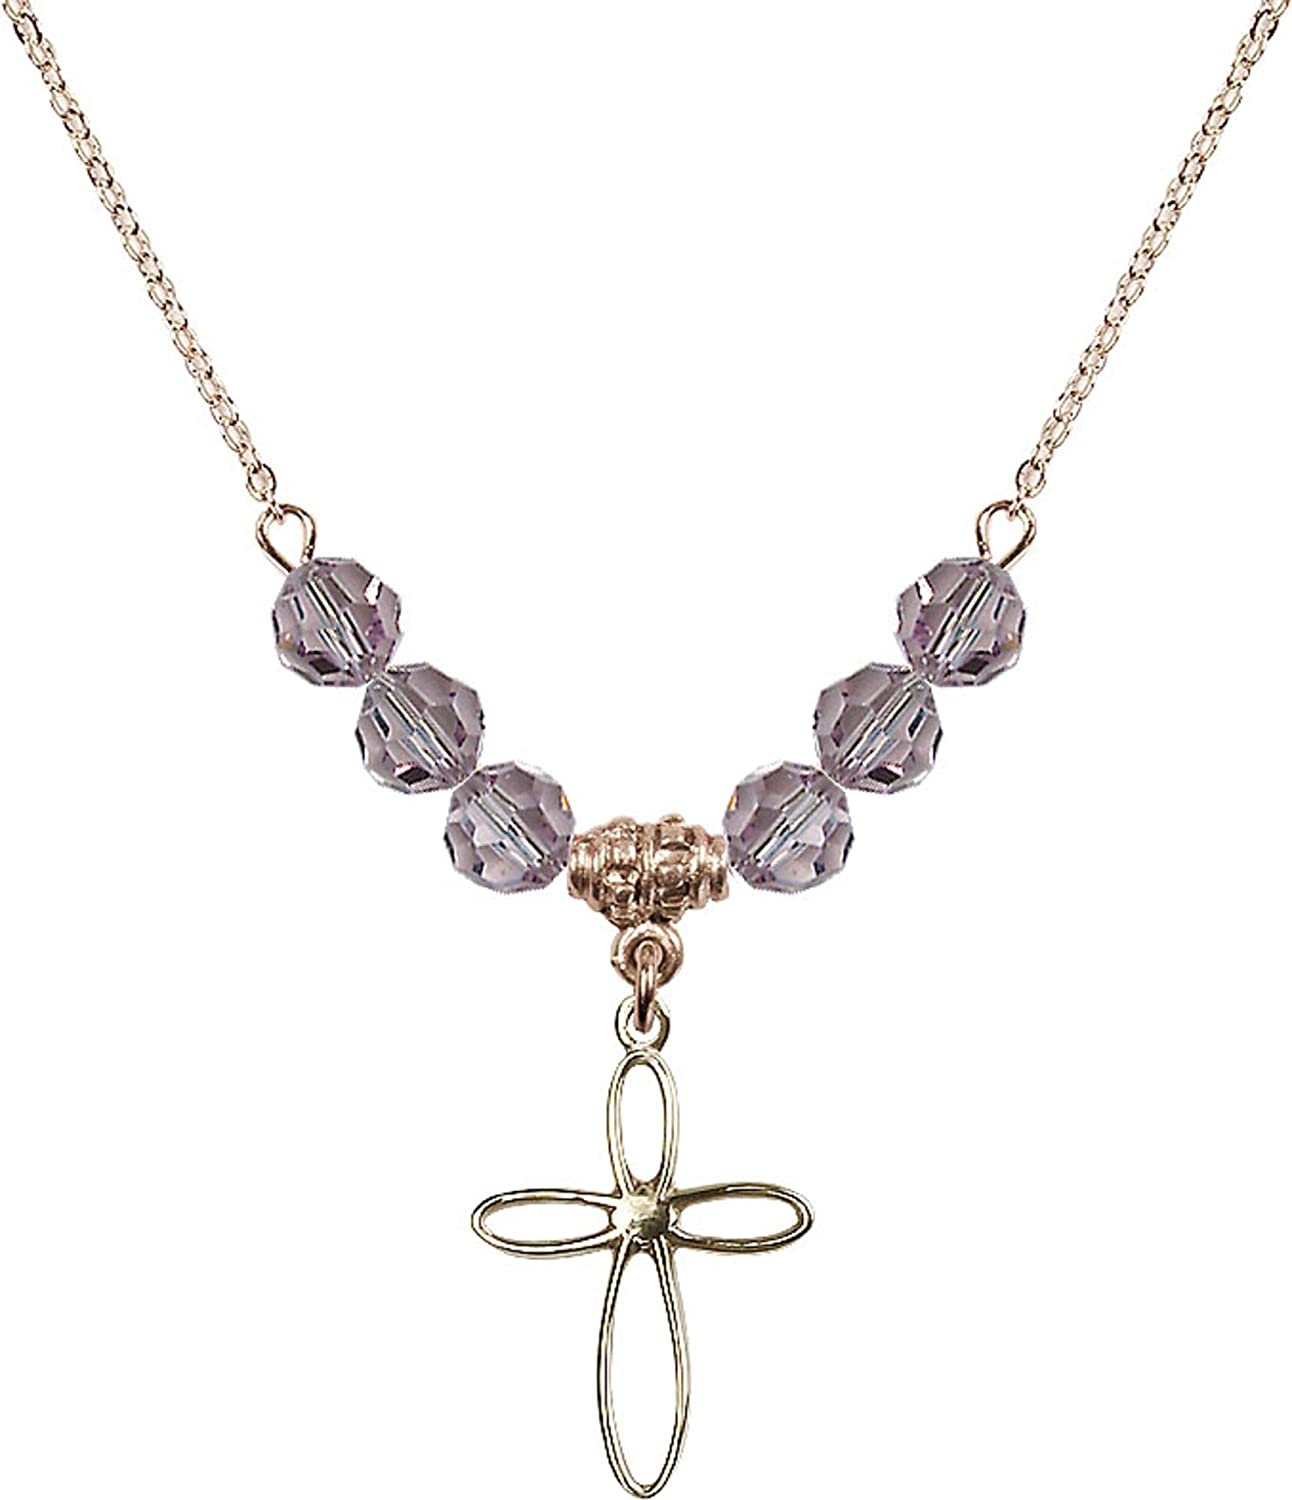 Bonyak Jewelry 18 Inch Hamilton Gold Plated Necklace w// 6mm Light Purple February Birth Month Stone Beads and Loop Cross Charm